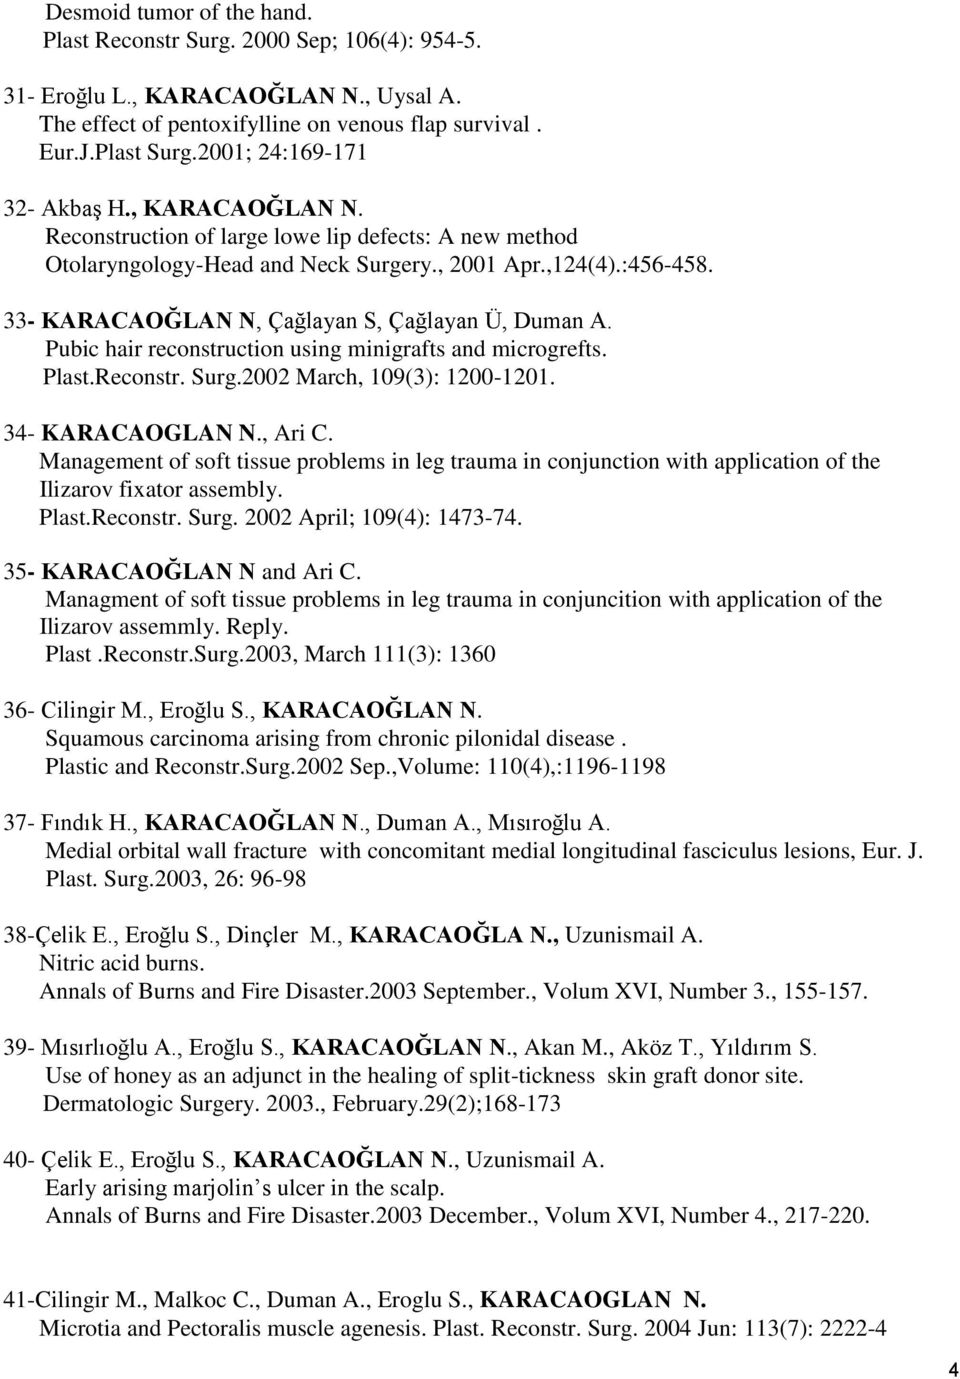 33- KARACAOĞLAN N, Çağlayan S, Çağlayan Ü, Duman A. Pubic hair reconstruction using minigrafts and microgrefts. Plast.Reconstr. Surg.2002 March, 109(3): 1200-1201. 34- KARACAOGLAN N., Ari C.